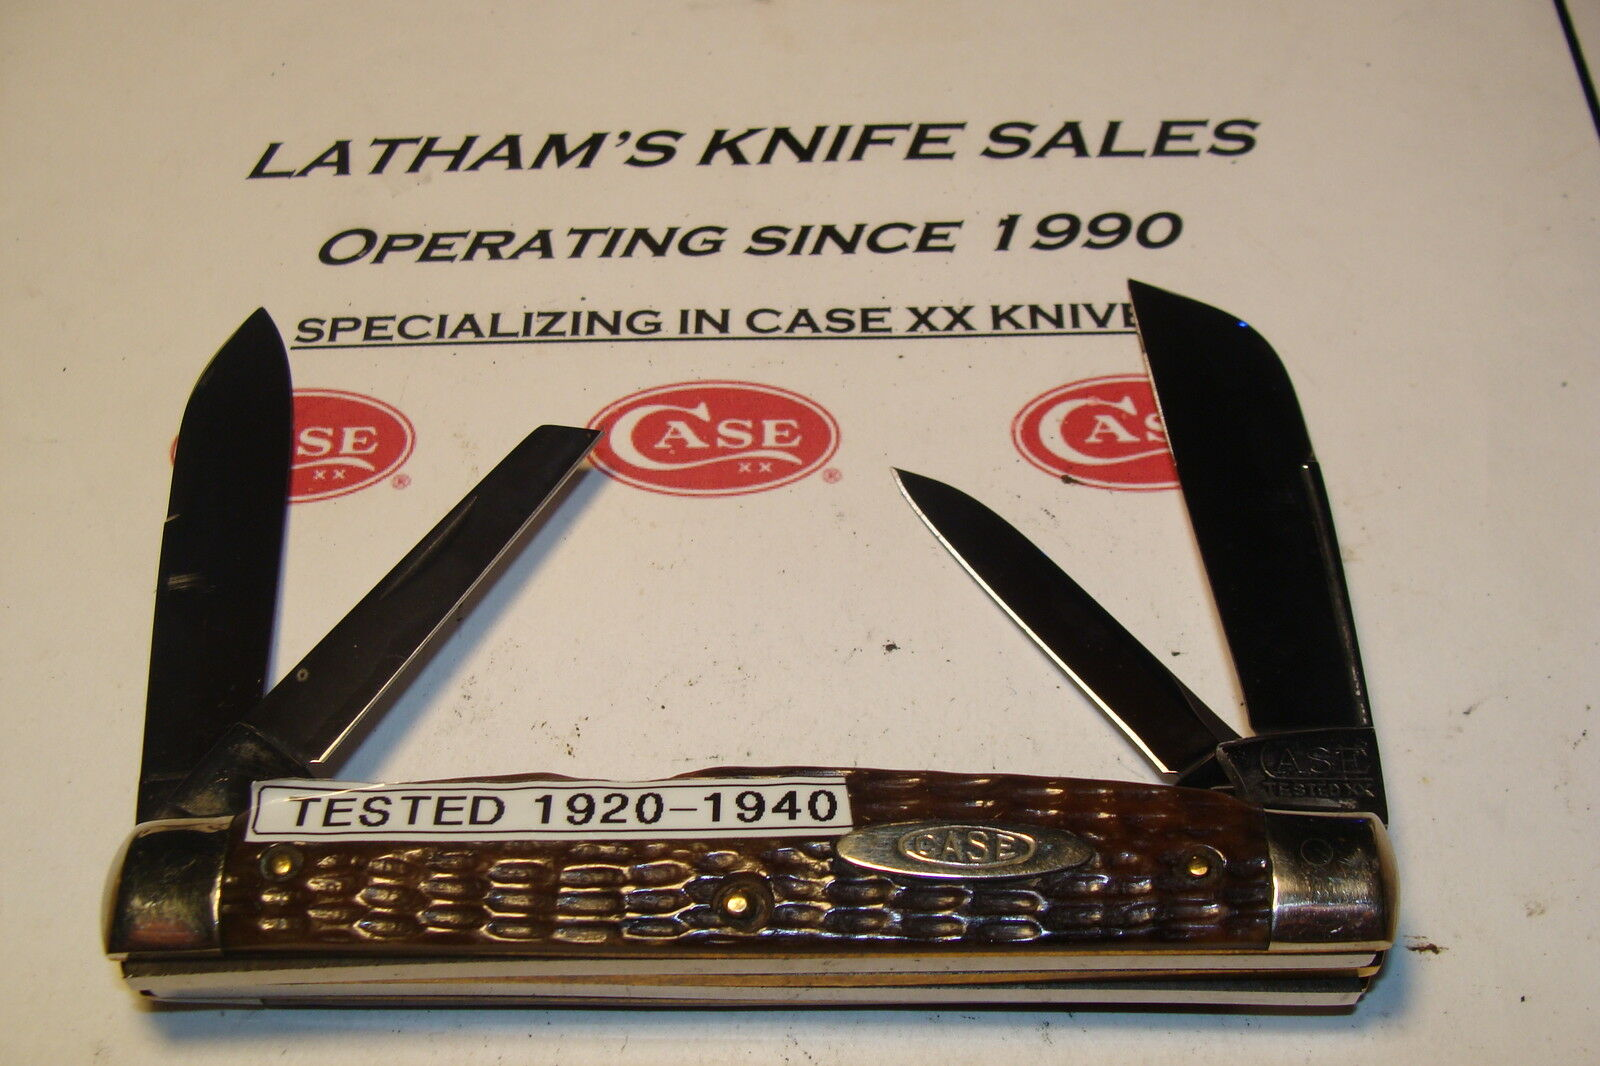 LATHAM'S KNIFE SALES